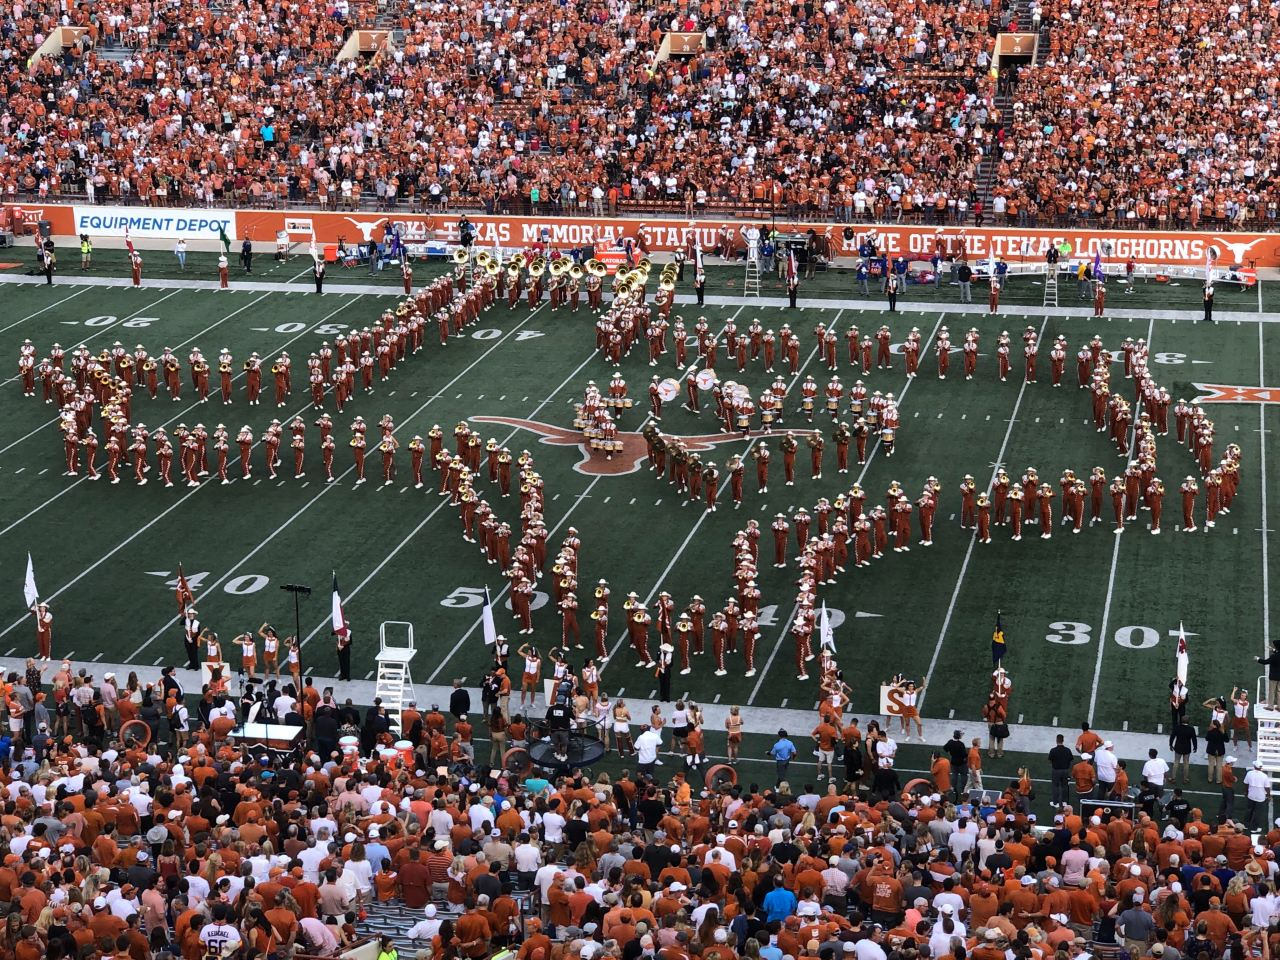 Longhorn Band won't play 'The Eyes of Texas' at final UT home game